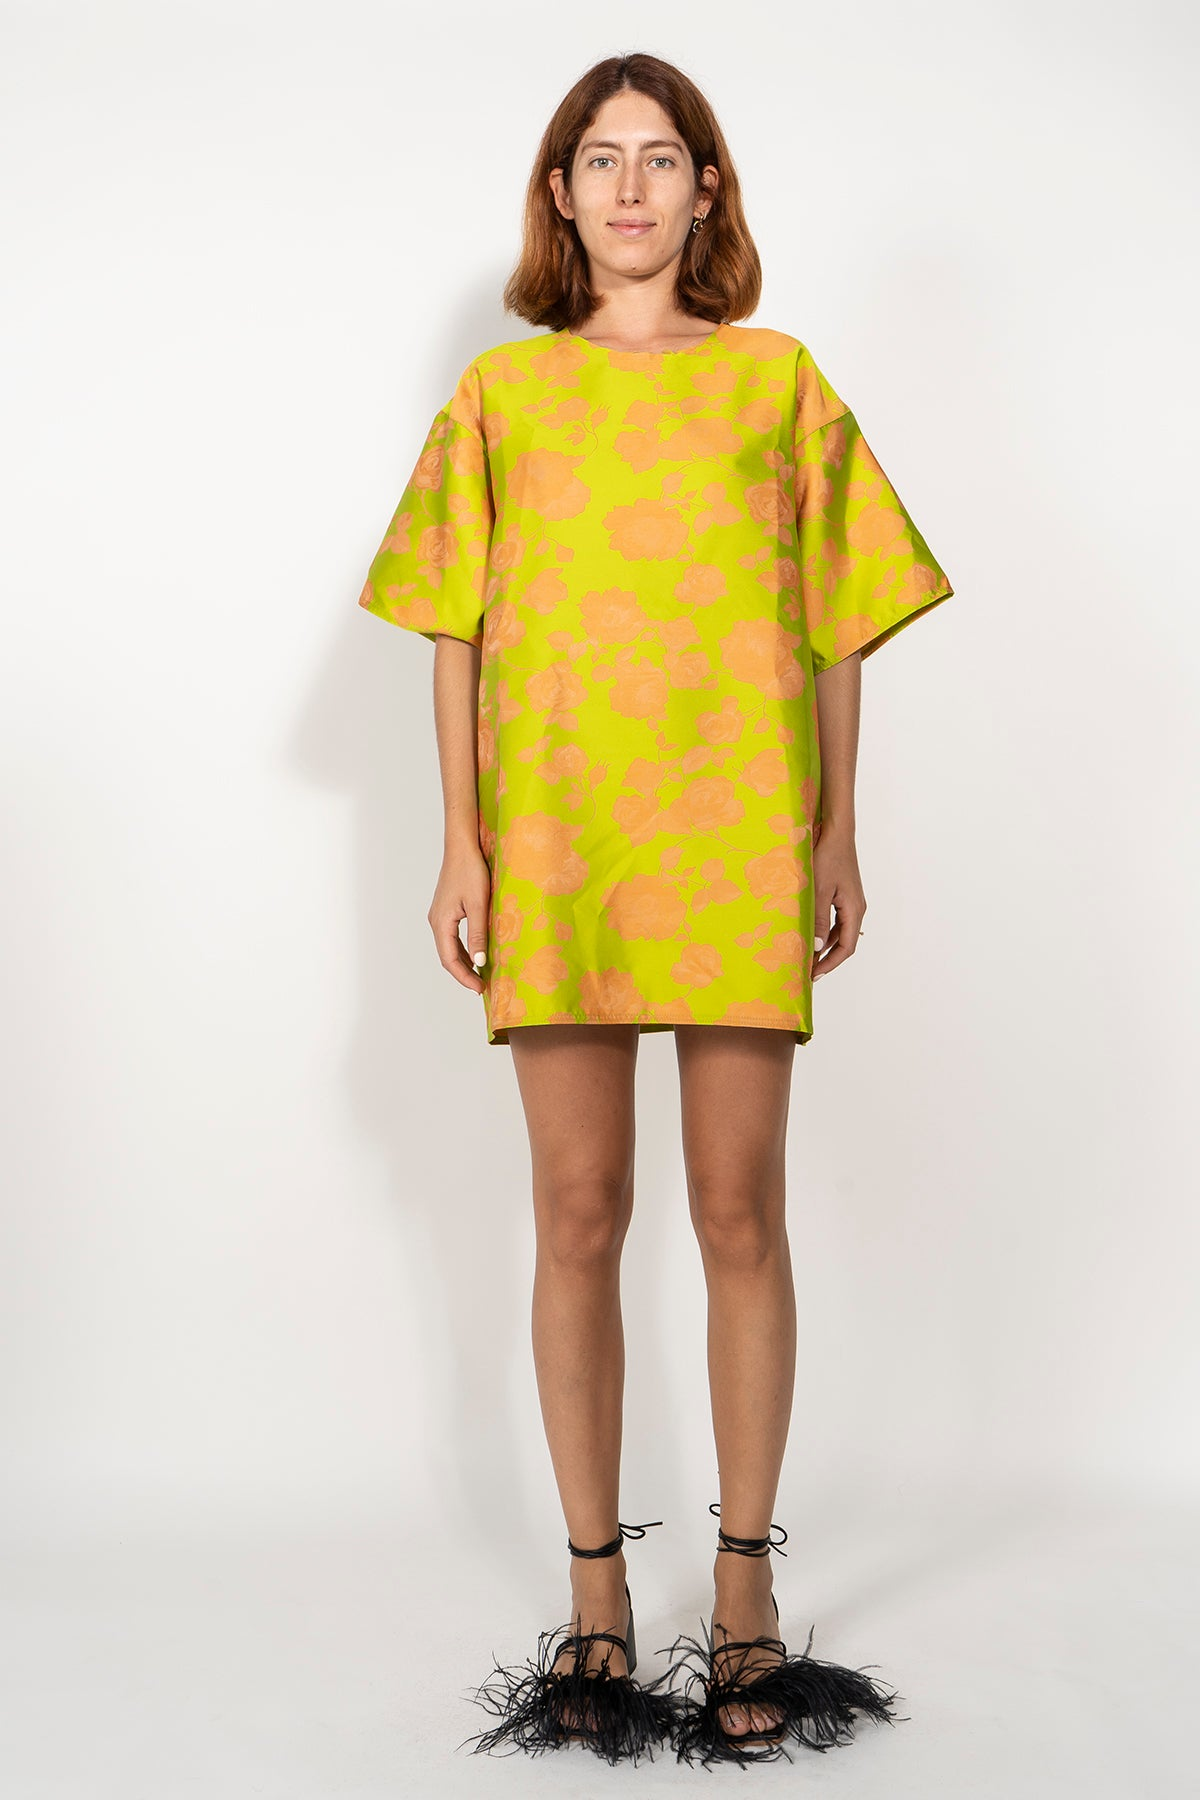 BROCADE OVERSIZED T-SHIRT DRESS IN LIME AND ORANGE